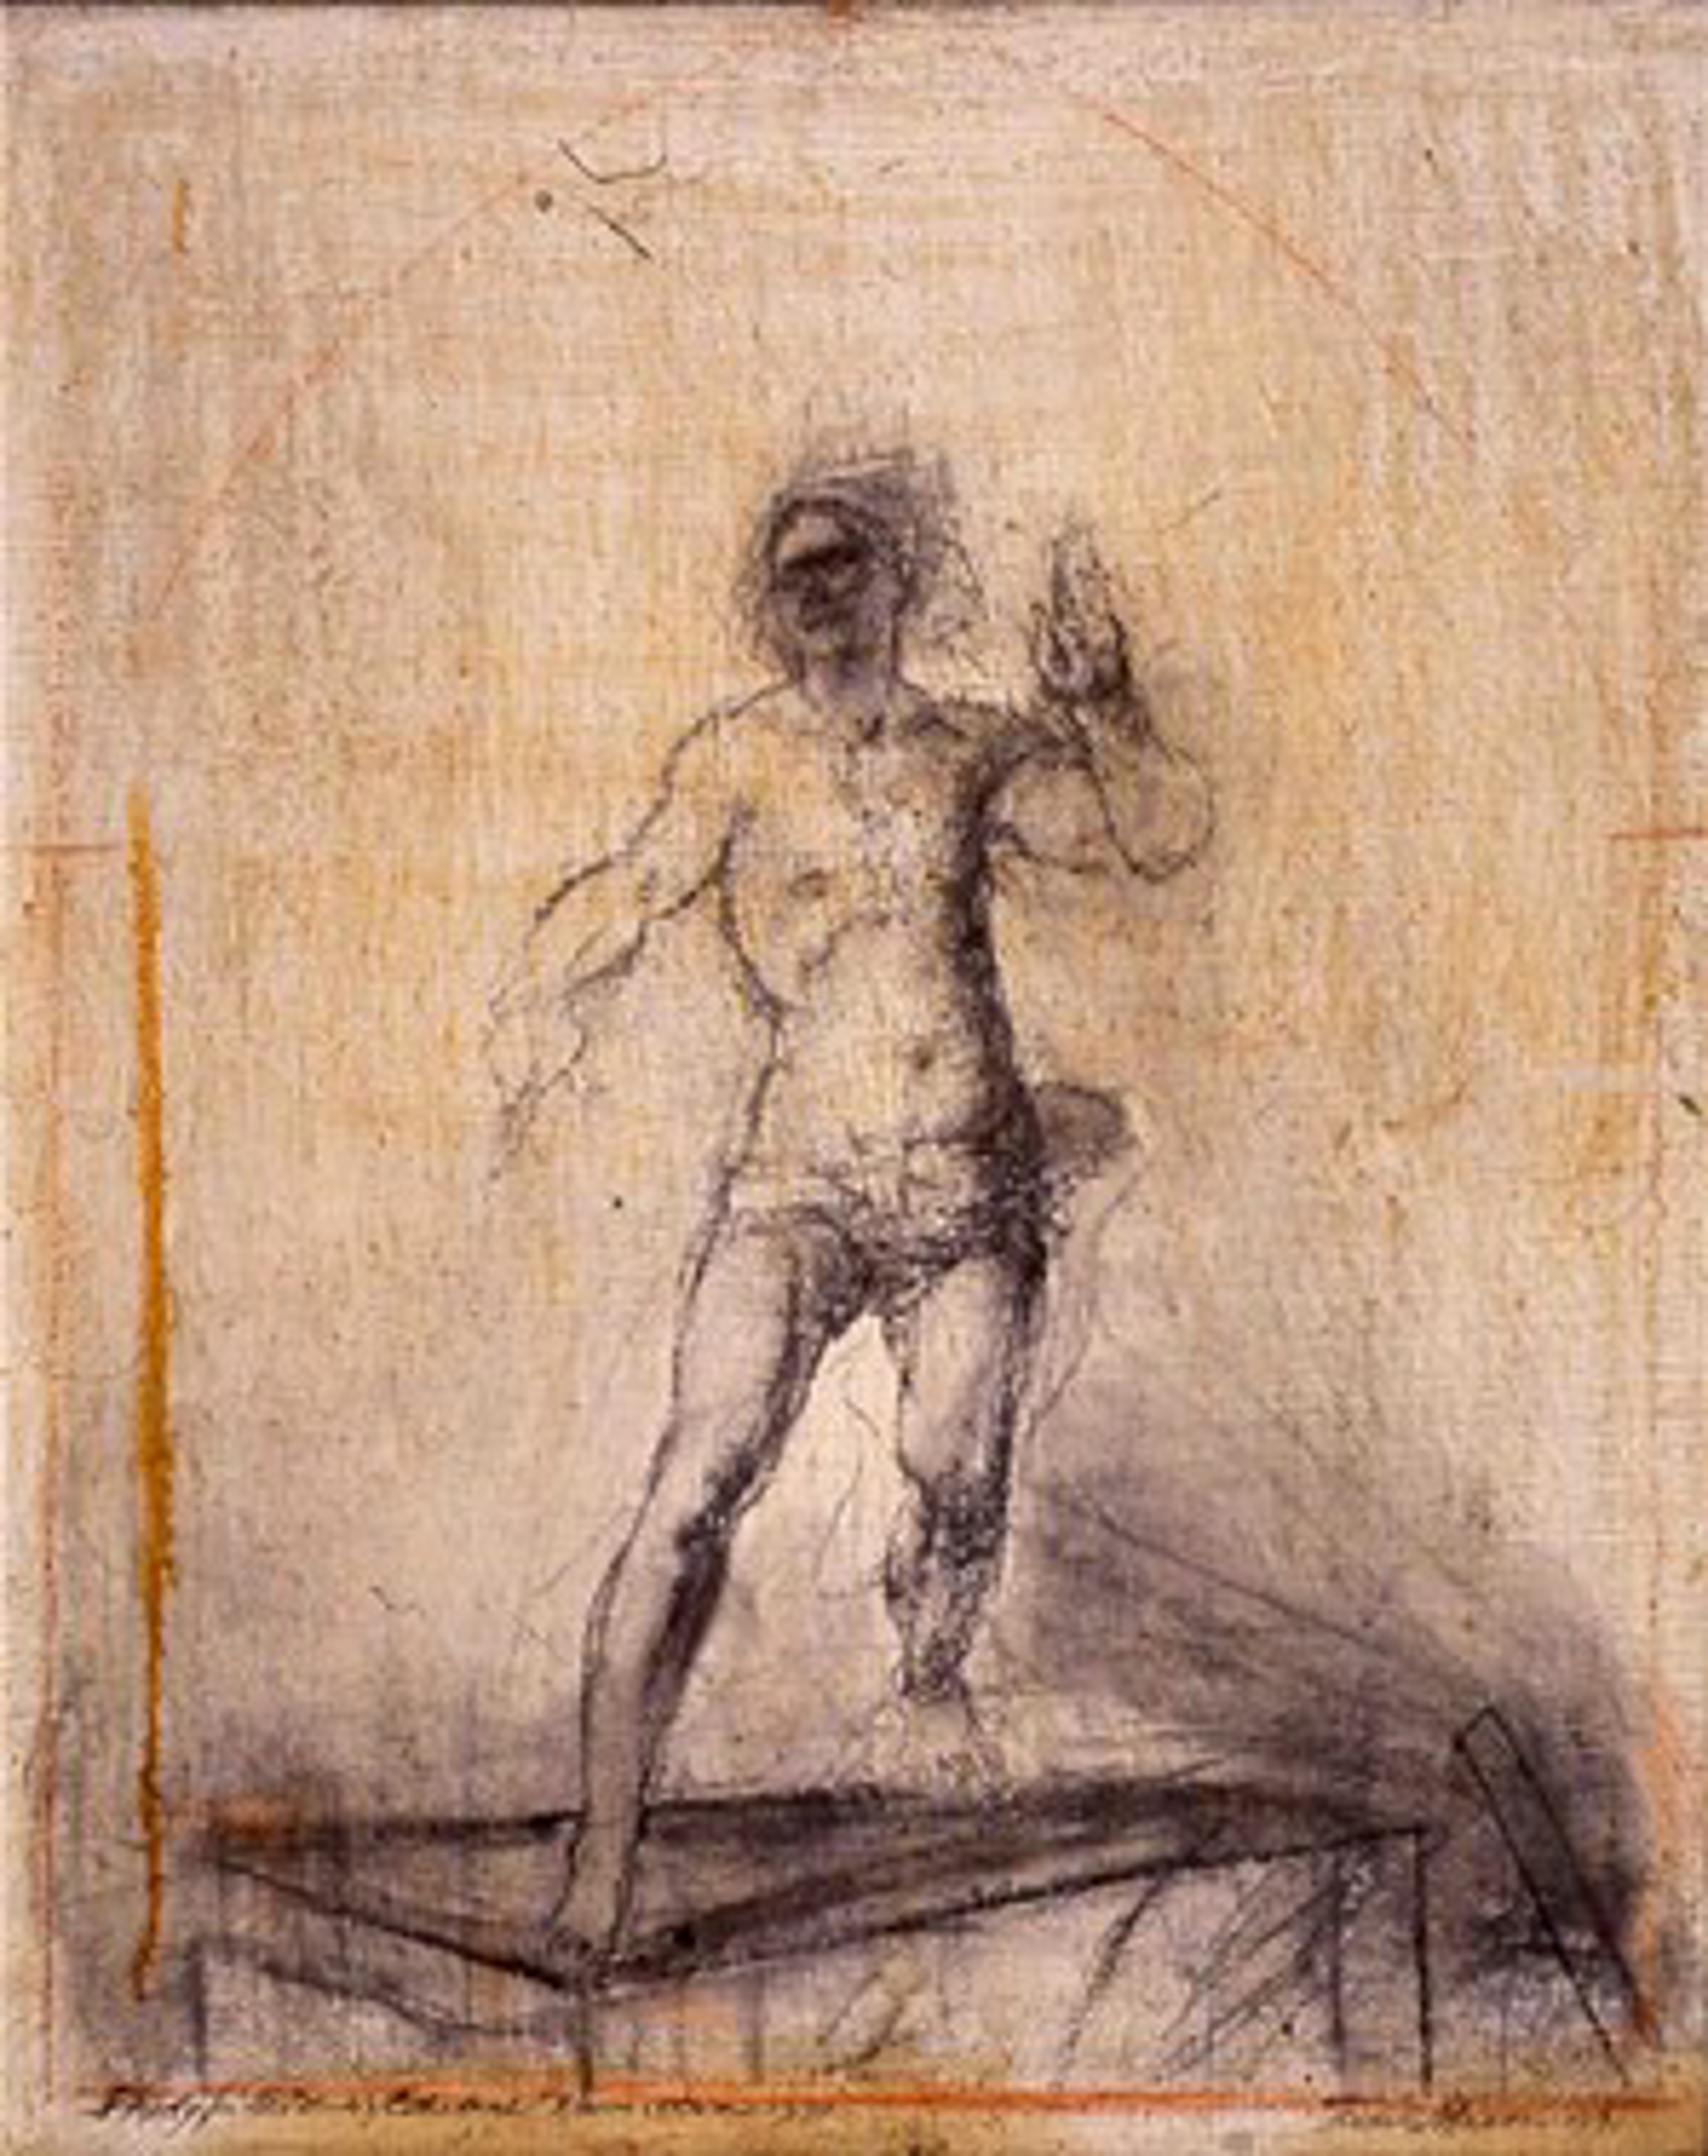 Original Study for Resurrection of Christ for St. Patrick's Old Cathedral by Frank Mason (1921 - 2009)